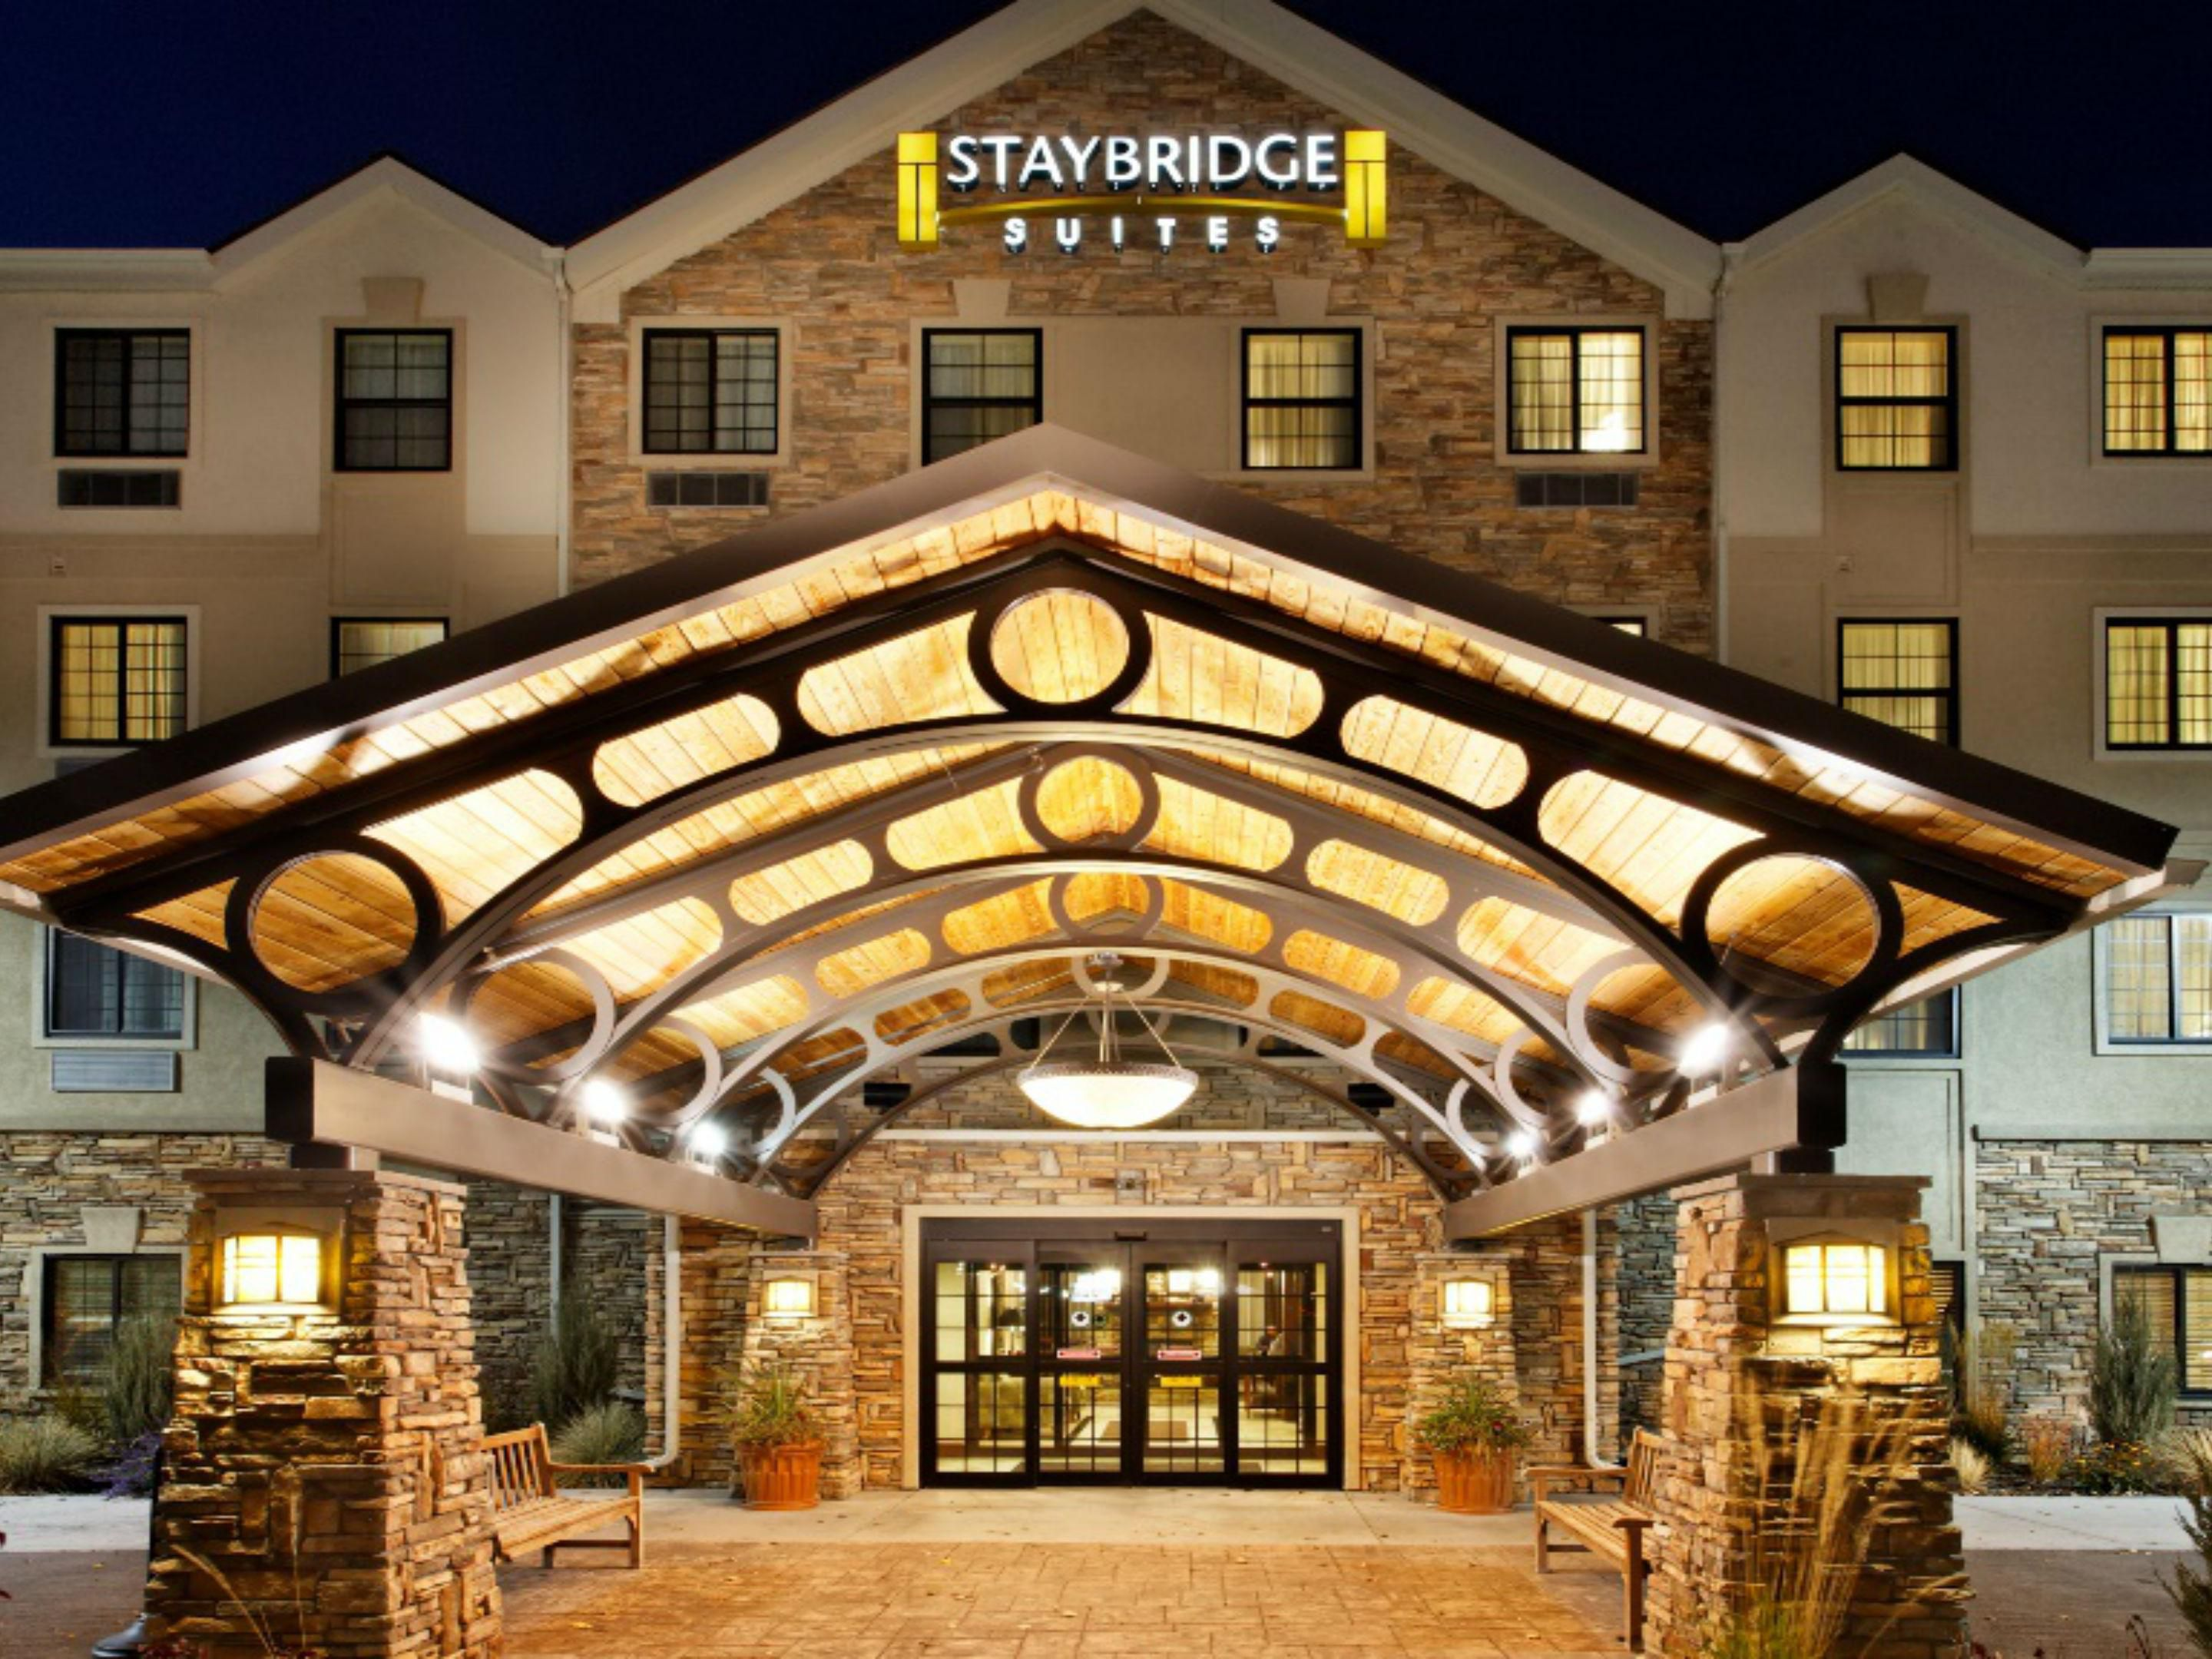 Rochester Hotels Staybridge Suites Commerce Dr Nw Extended Stay Hotel In Minnesota